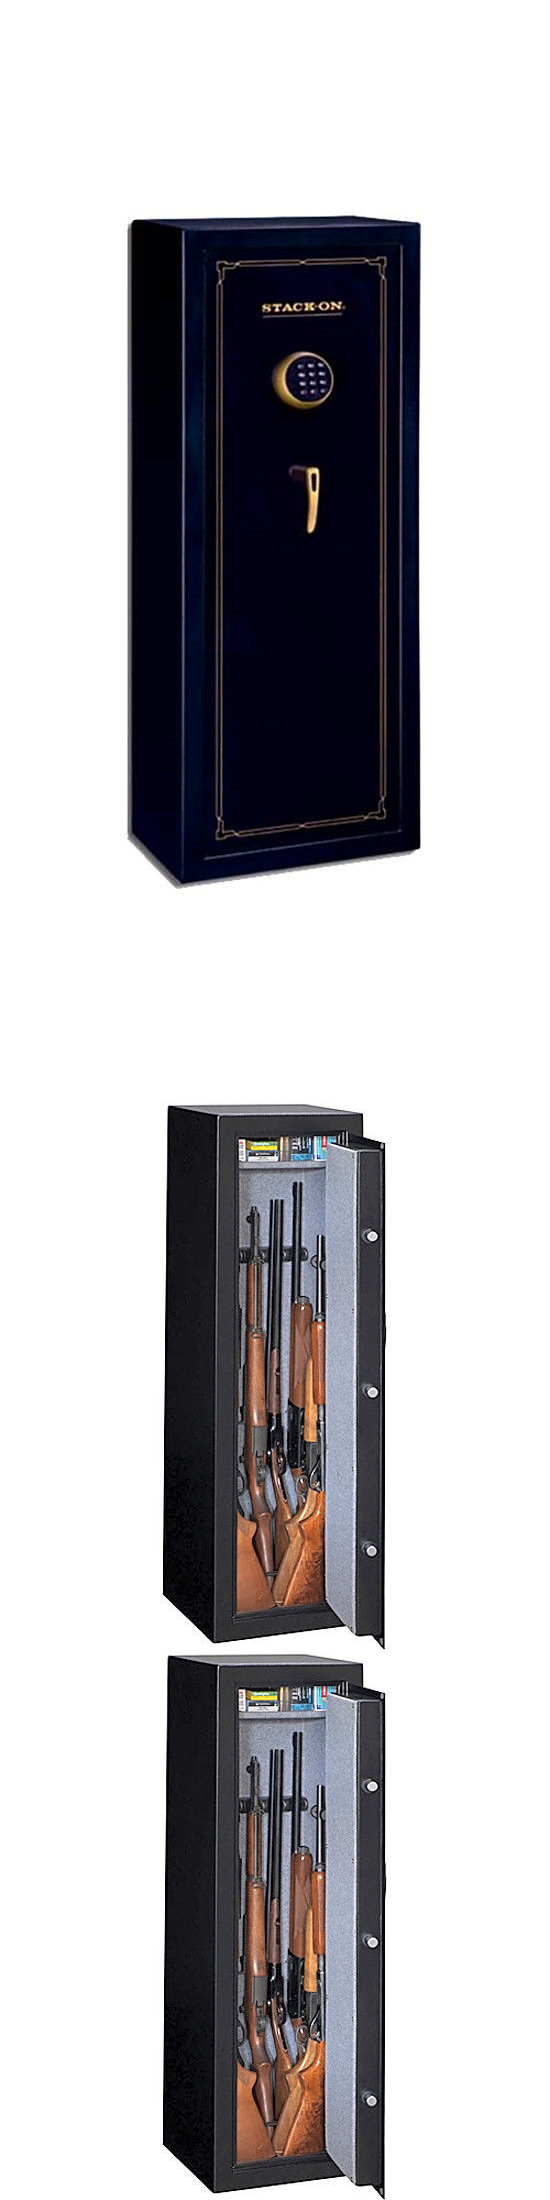 Woodmark Gun Cabinet Cabinets And Safes 177877 Stack On 10 Gun Safe Electronic Lock